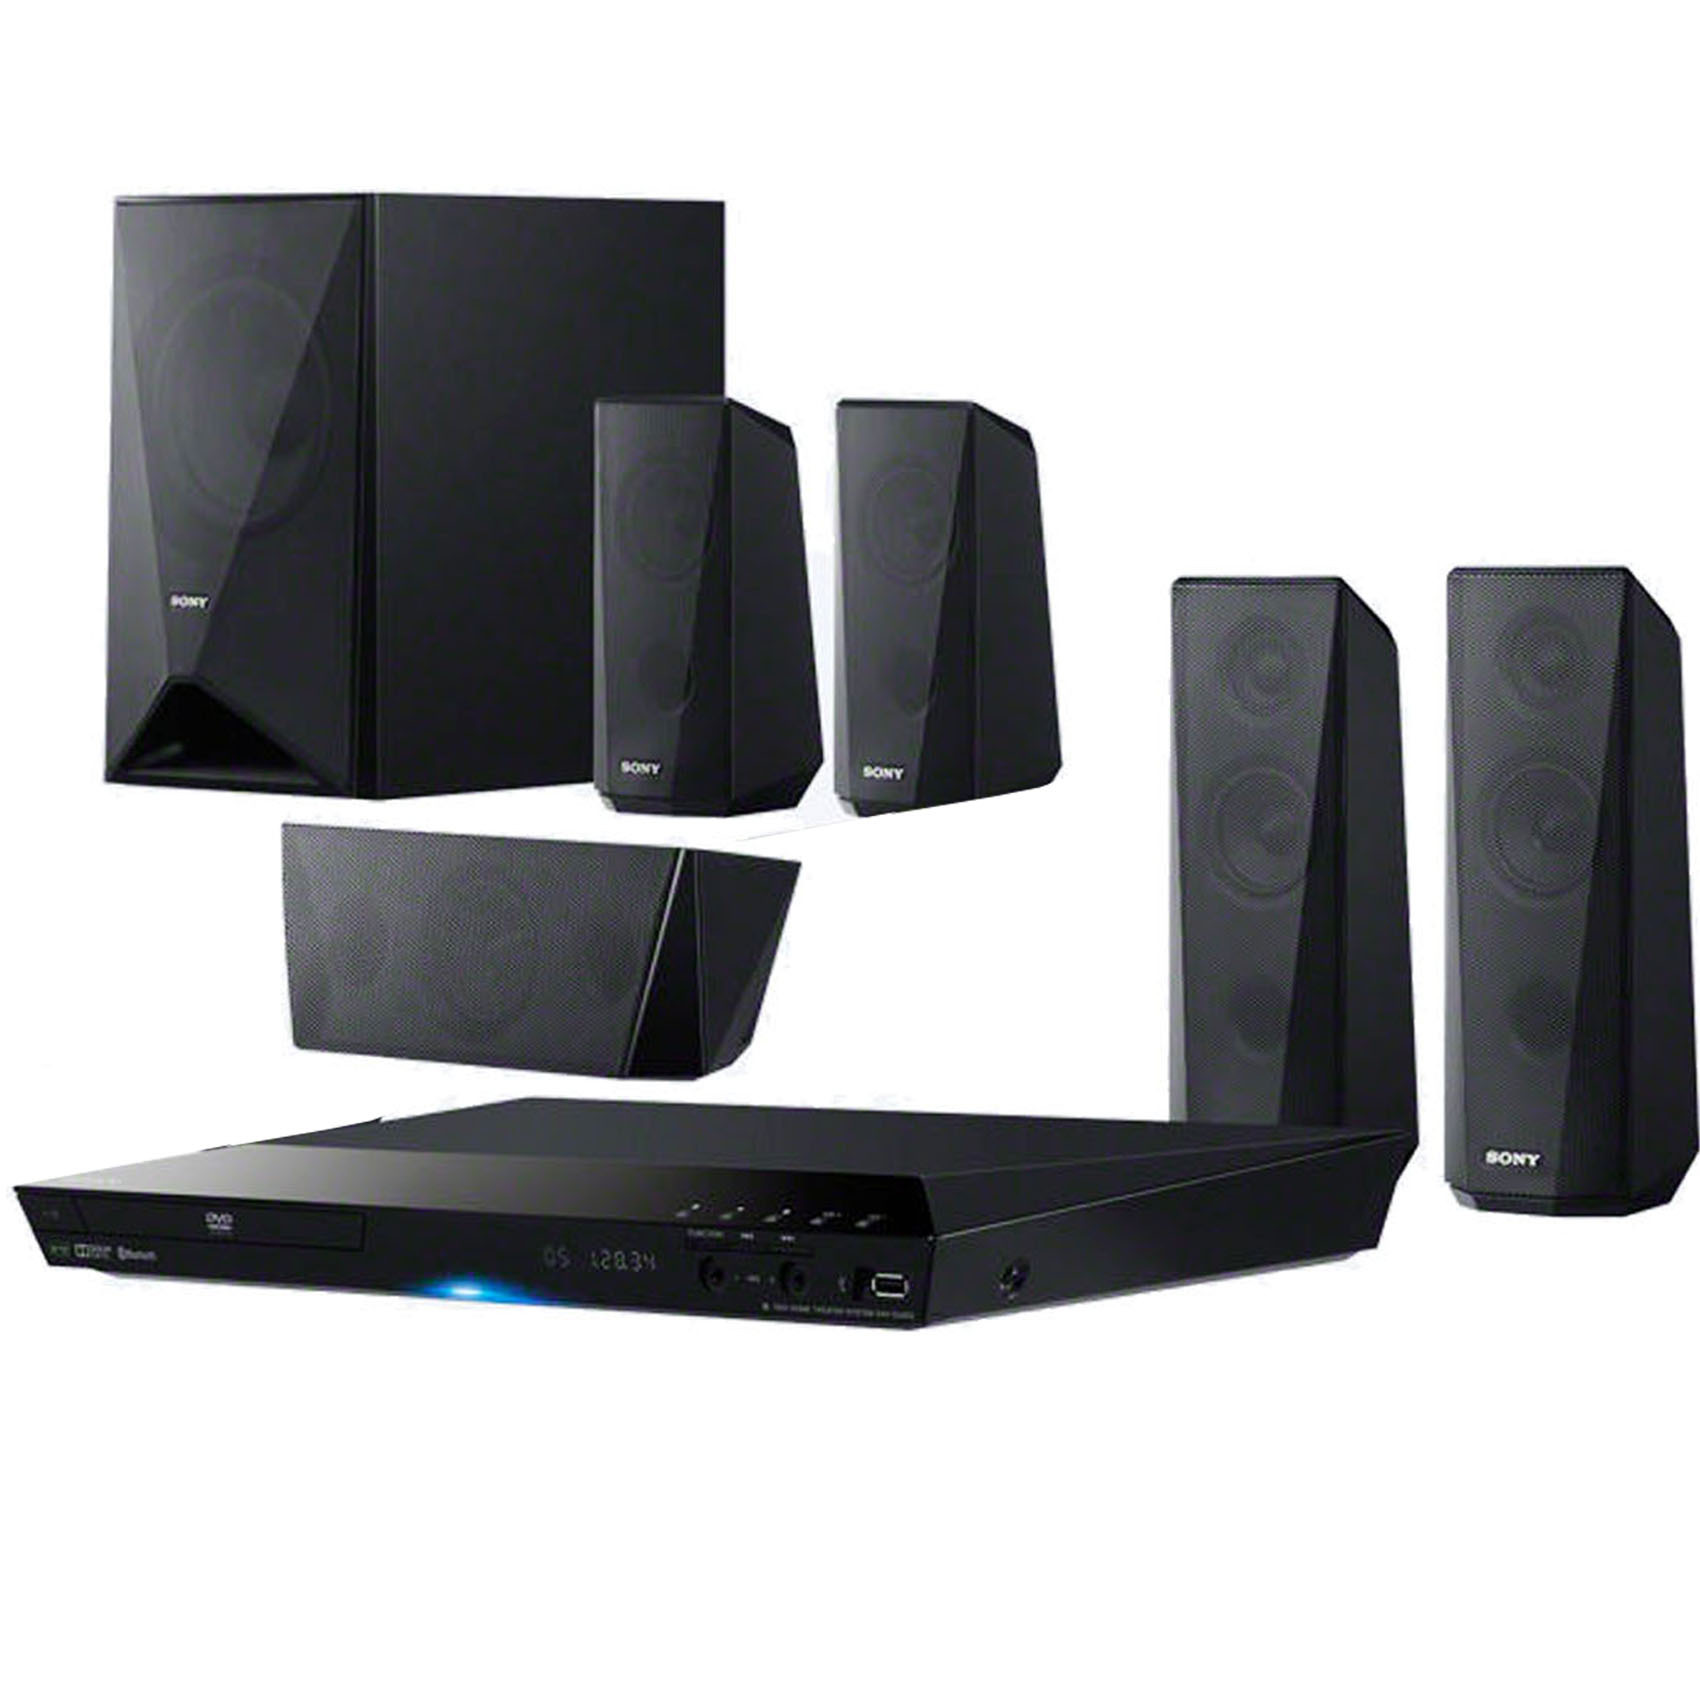 buy sony home theater 5 1 dav dz350k online in uae carrefour uae. Black Bedroom Furniture Sets. Home Design Ideas